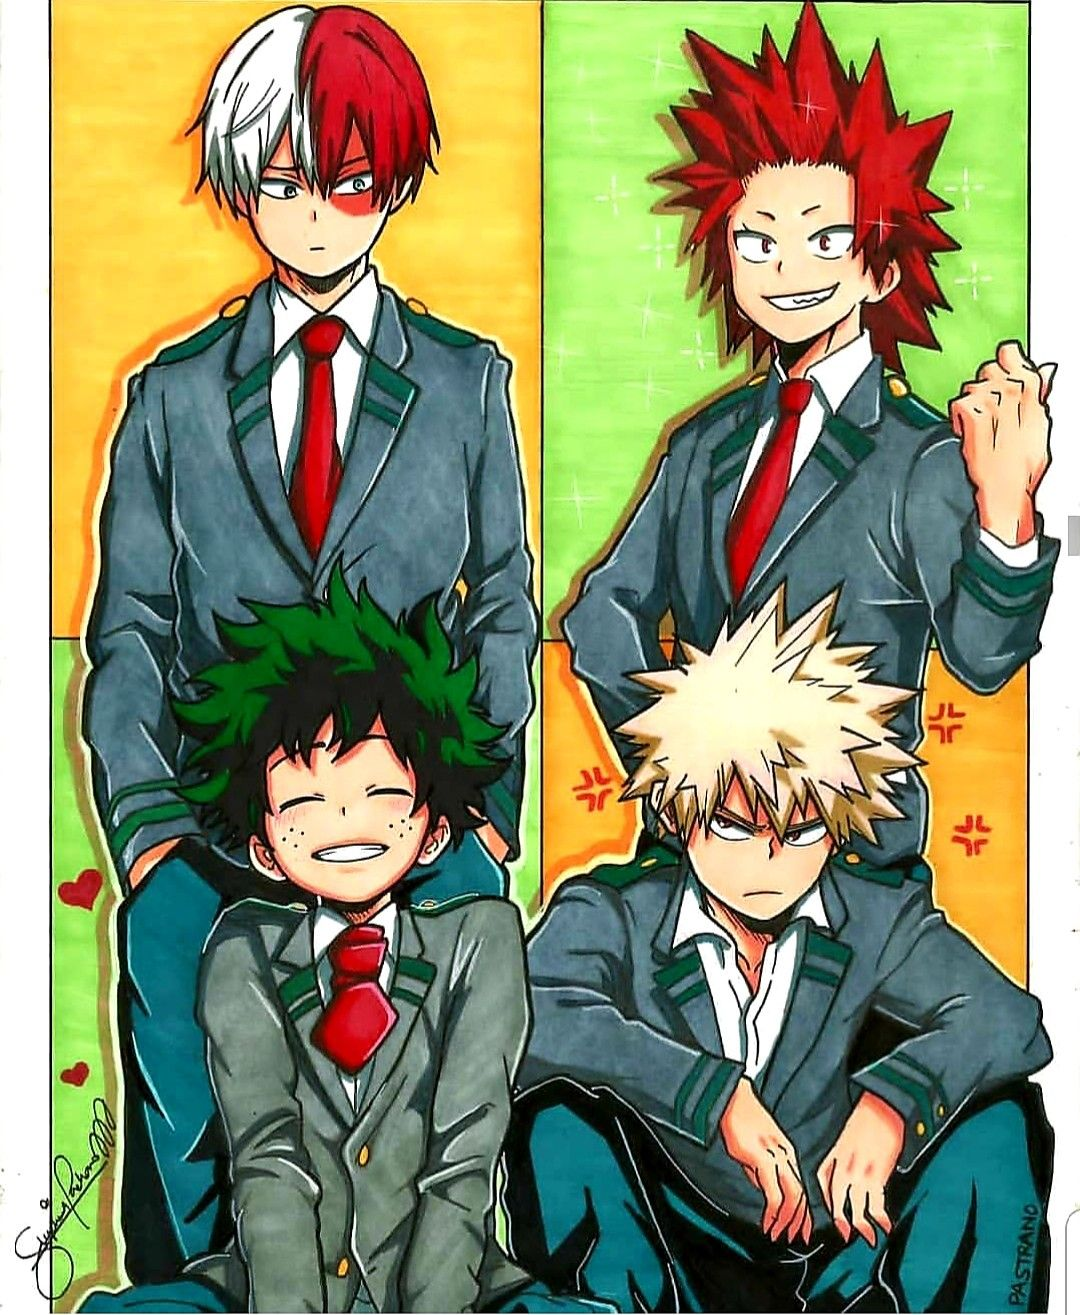 Pin By Lindsay Battershell On Anime Cartoons My Hero My Hero Academia My Hero Academia Manga